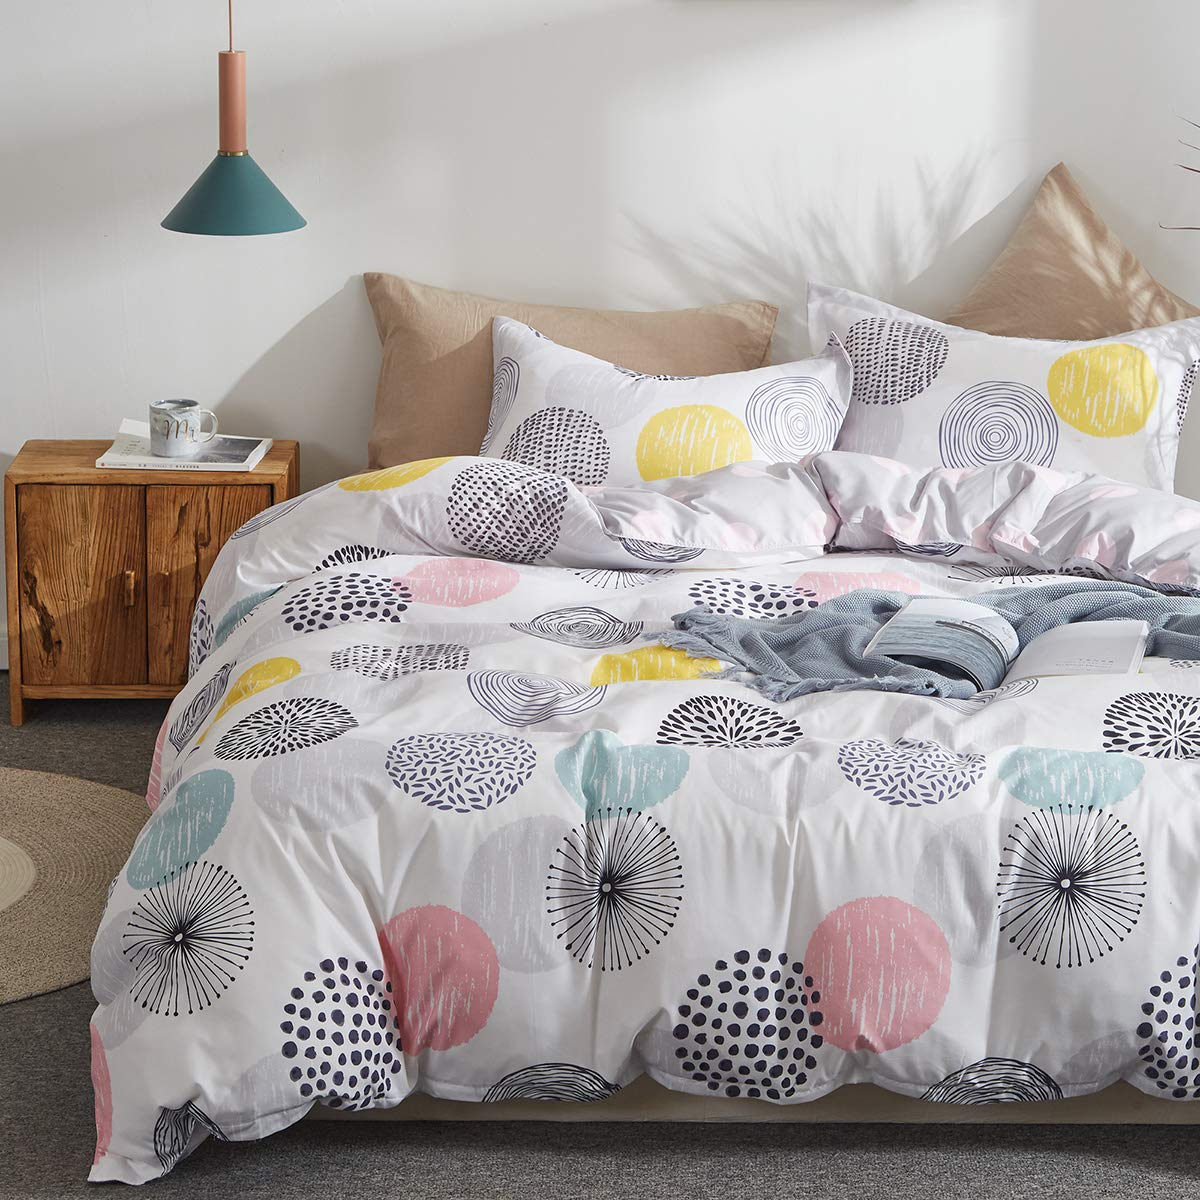 Uozzi Bedding 3 Piece Duvet Cover Set Queen (1 Duvet Cover + 2 Pillow Shams) with Colorful Dots, 800 - TC Comforter Cover with Zipper Closure, 4 Corner Ties - Pink Gray Yellow Circles for Adult/Kids by Uozzi Bedding